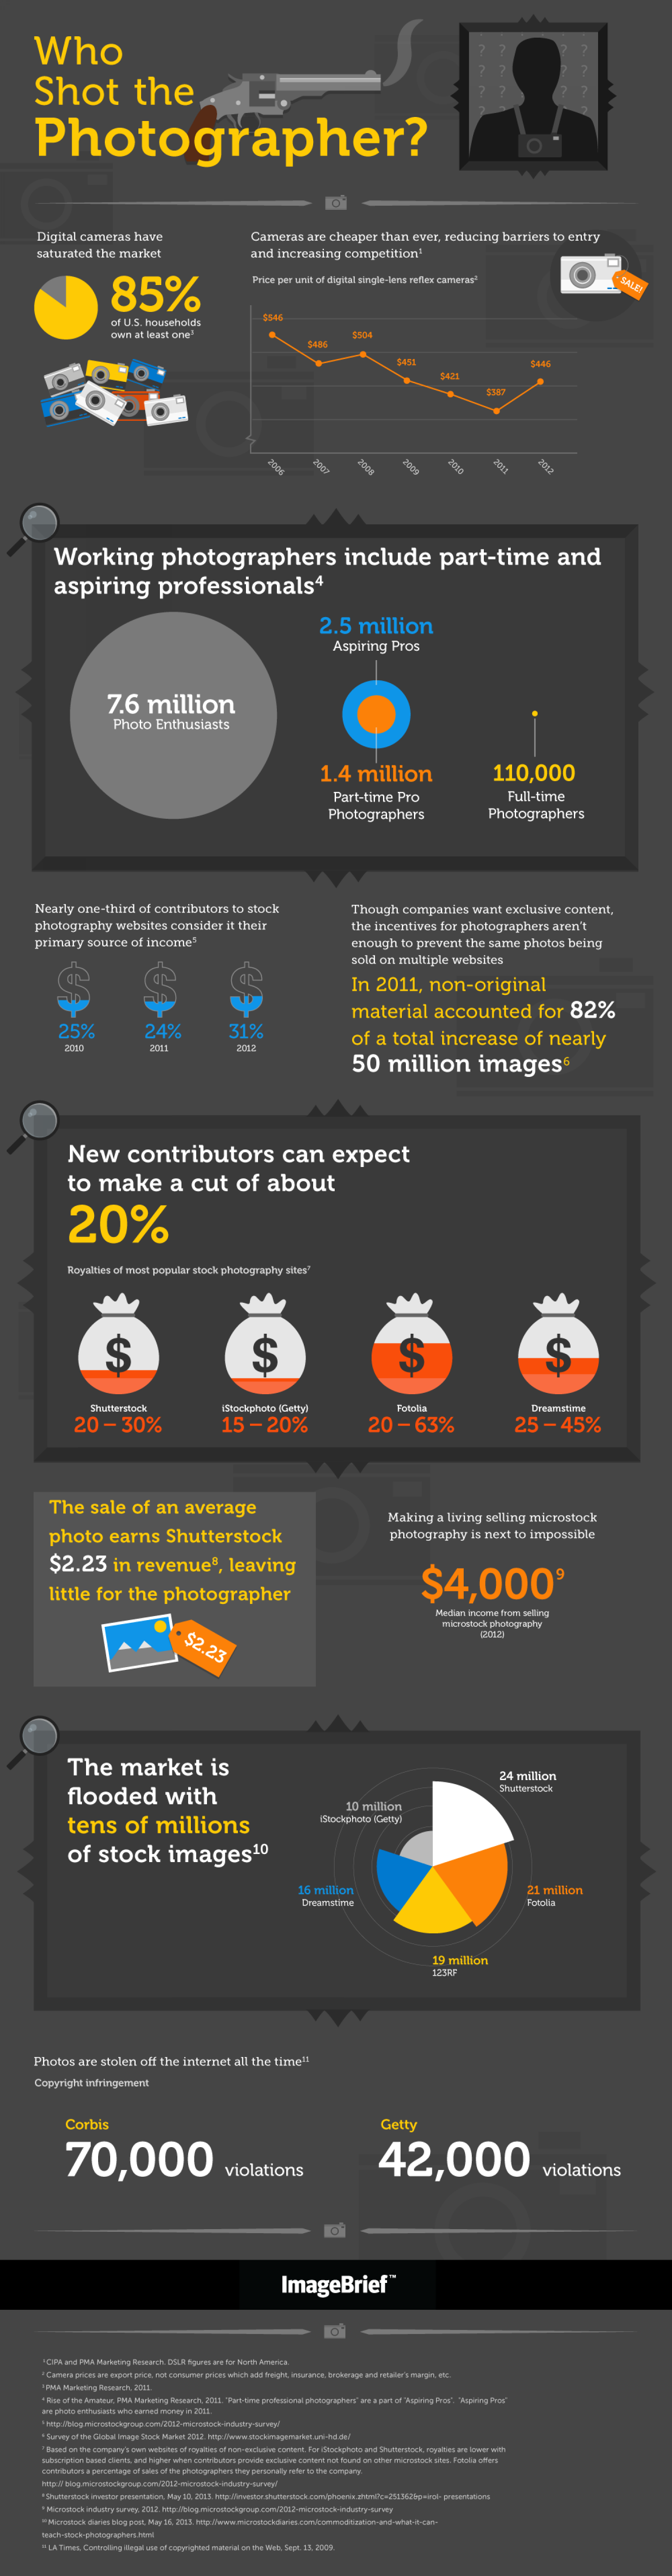 Who shot the photographer? Infographic